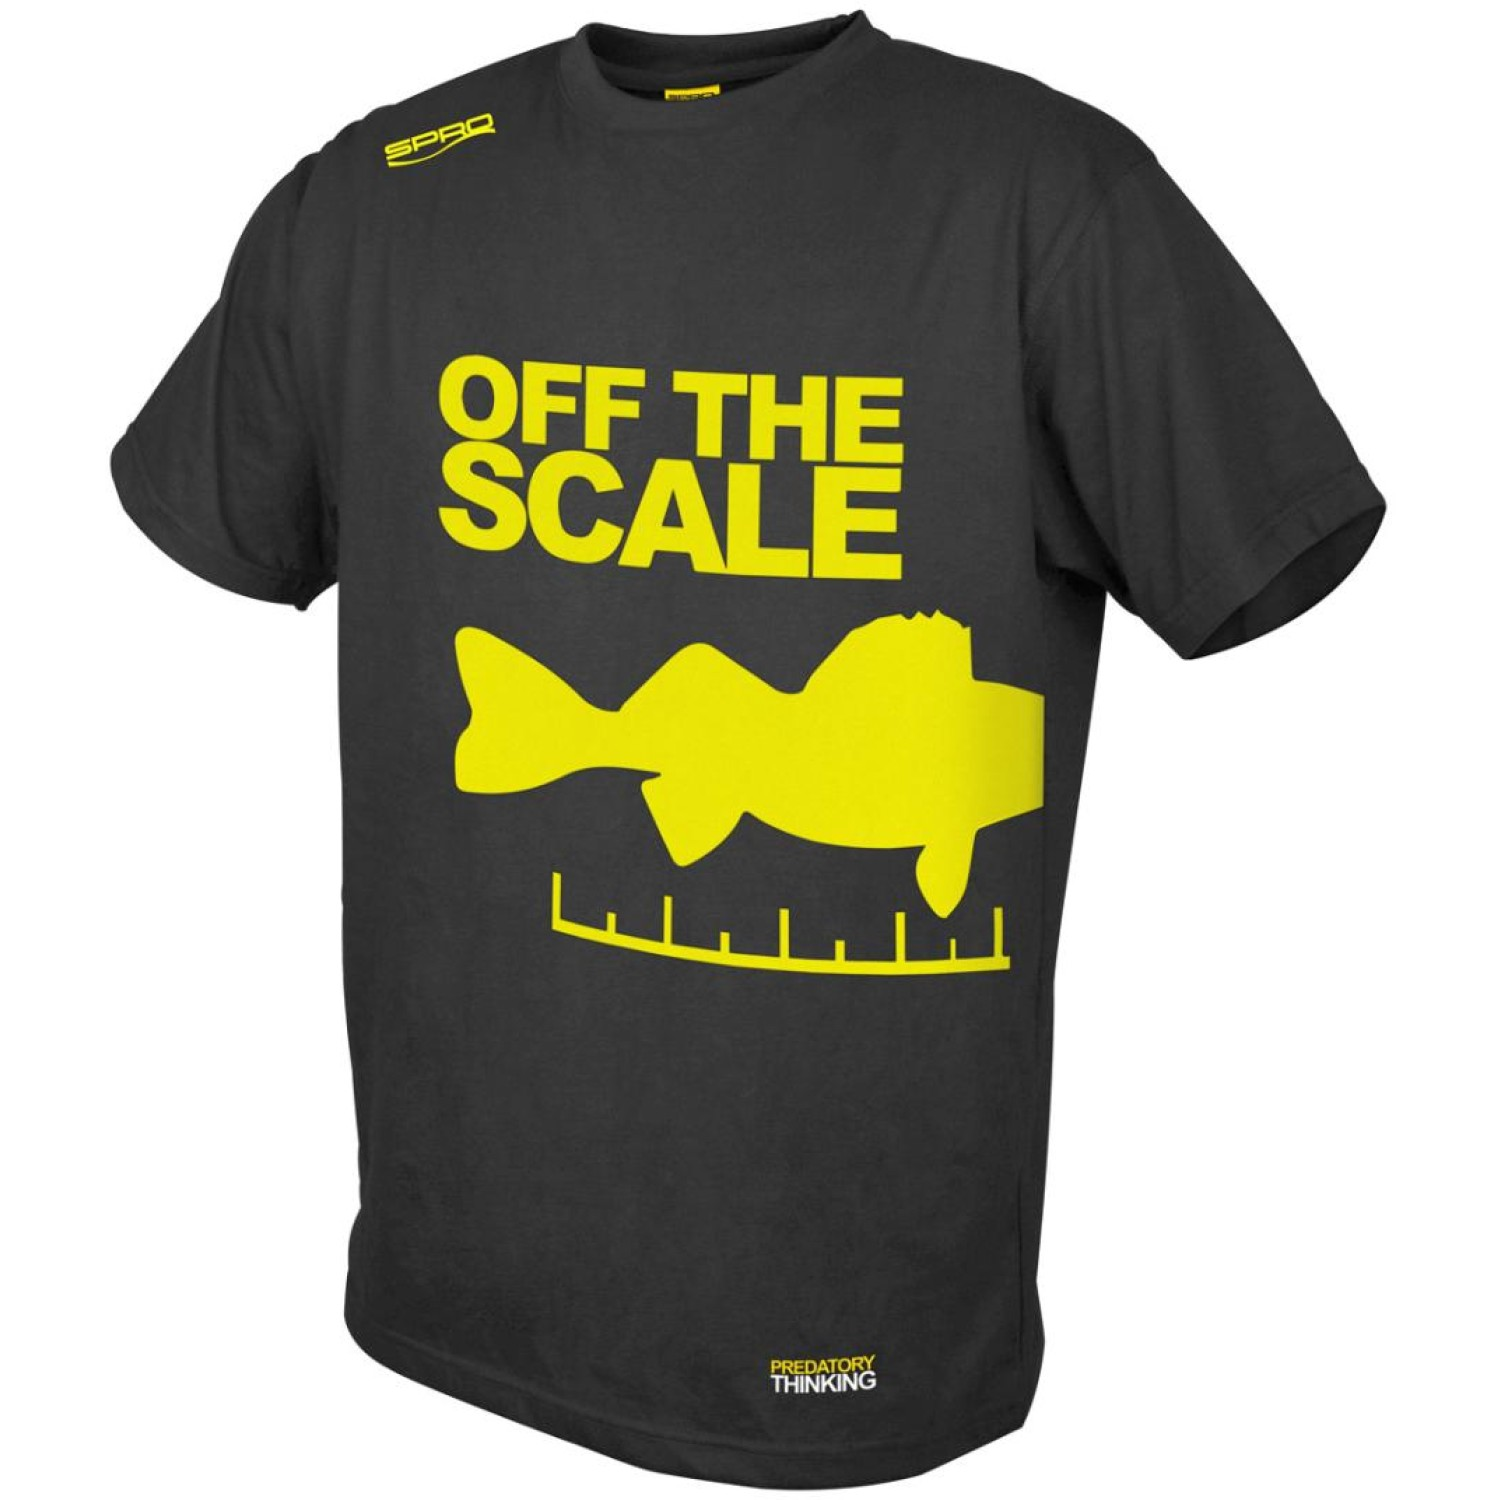 Spro T-Shirt Off The Scale XXL Bekleidung Angelsport